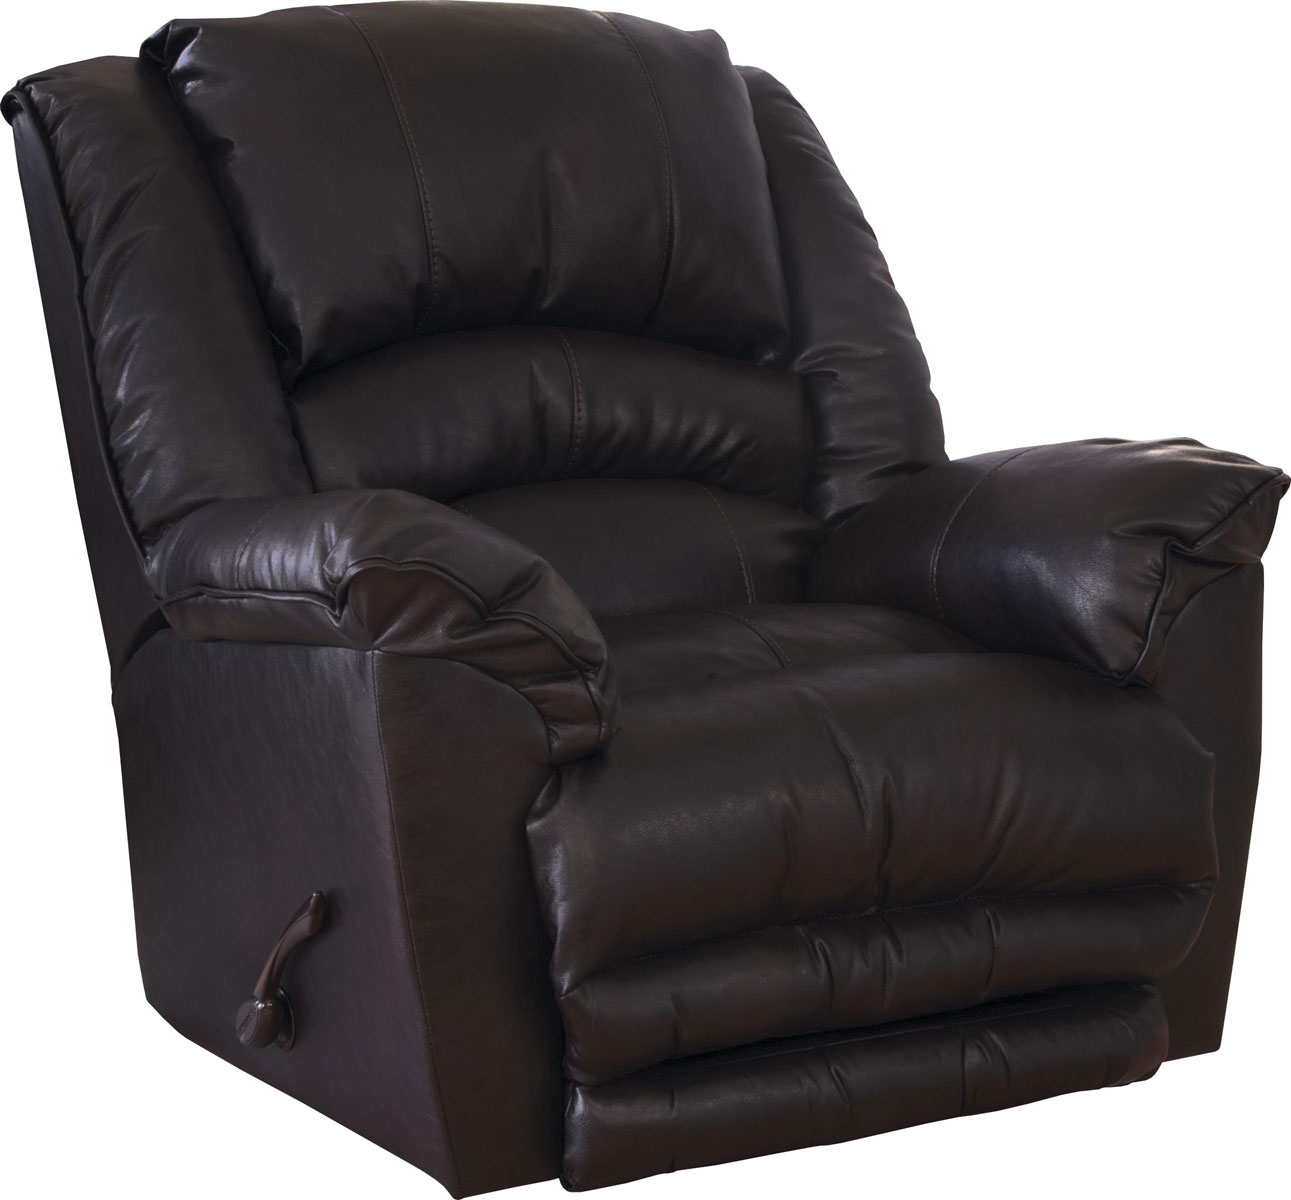 CatNapper Filmore Chaise Rocker Recliner - Oversized X-tra Comfort Footrest - Godiva